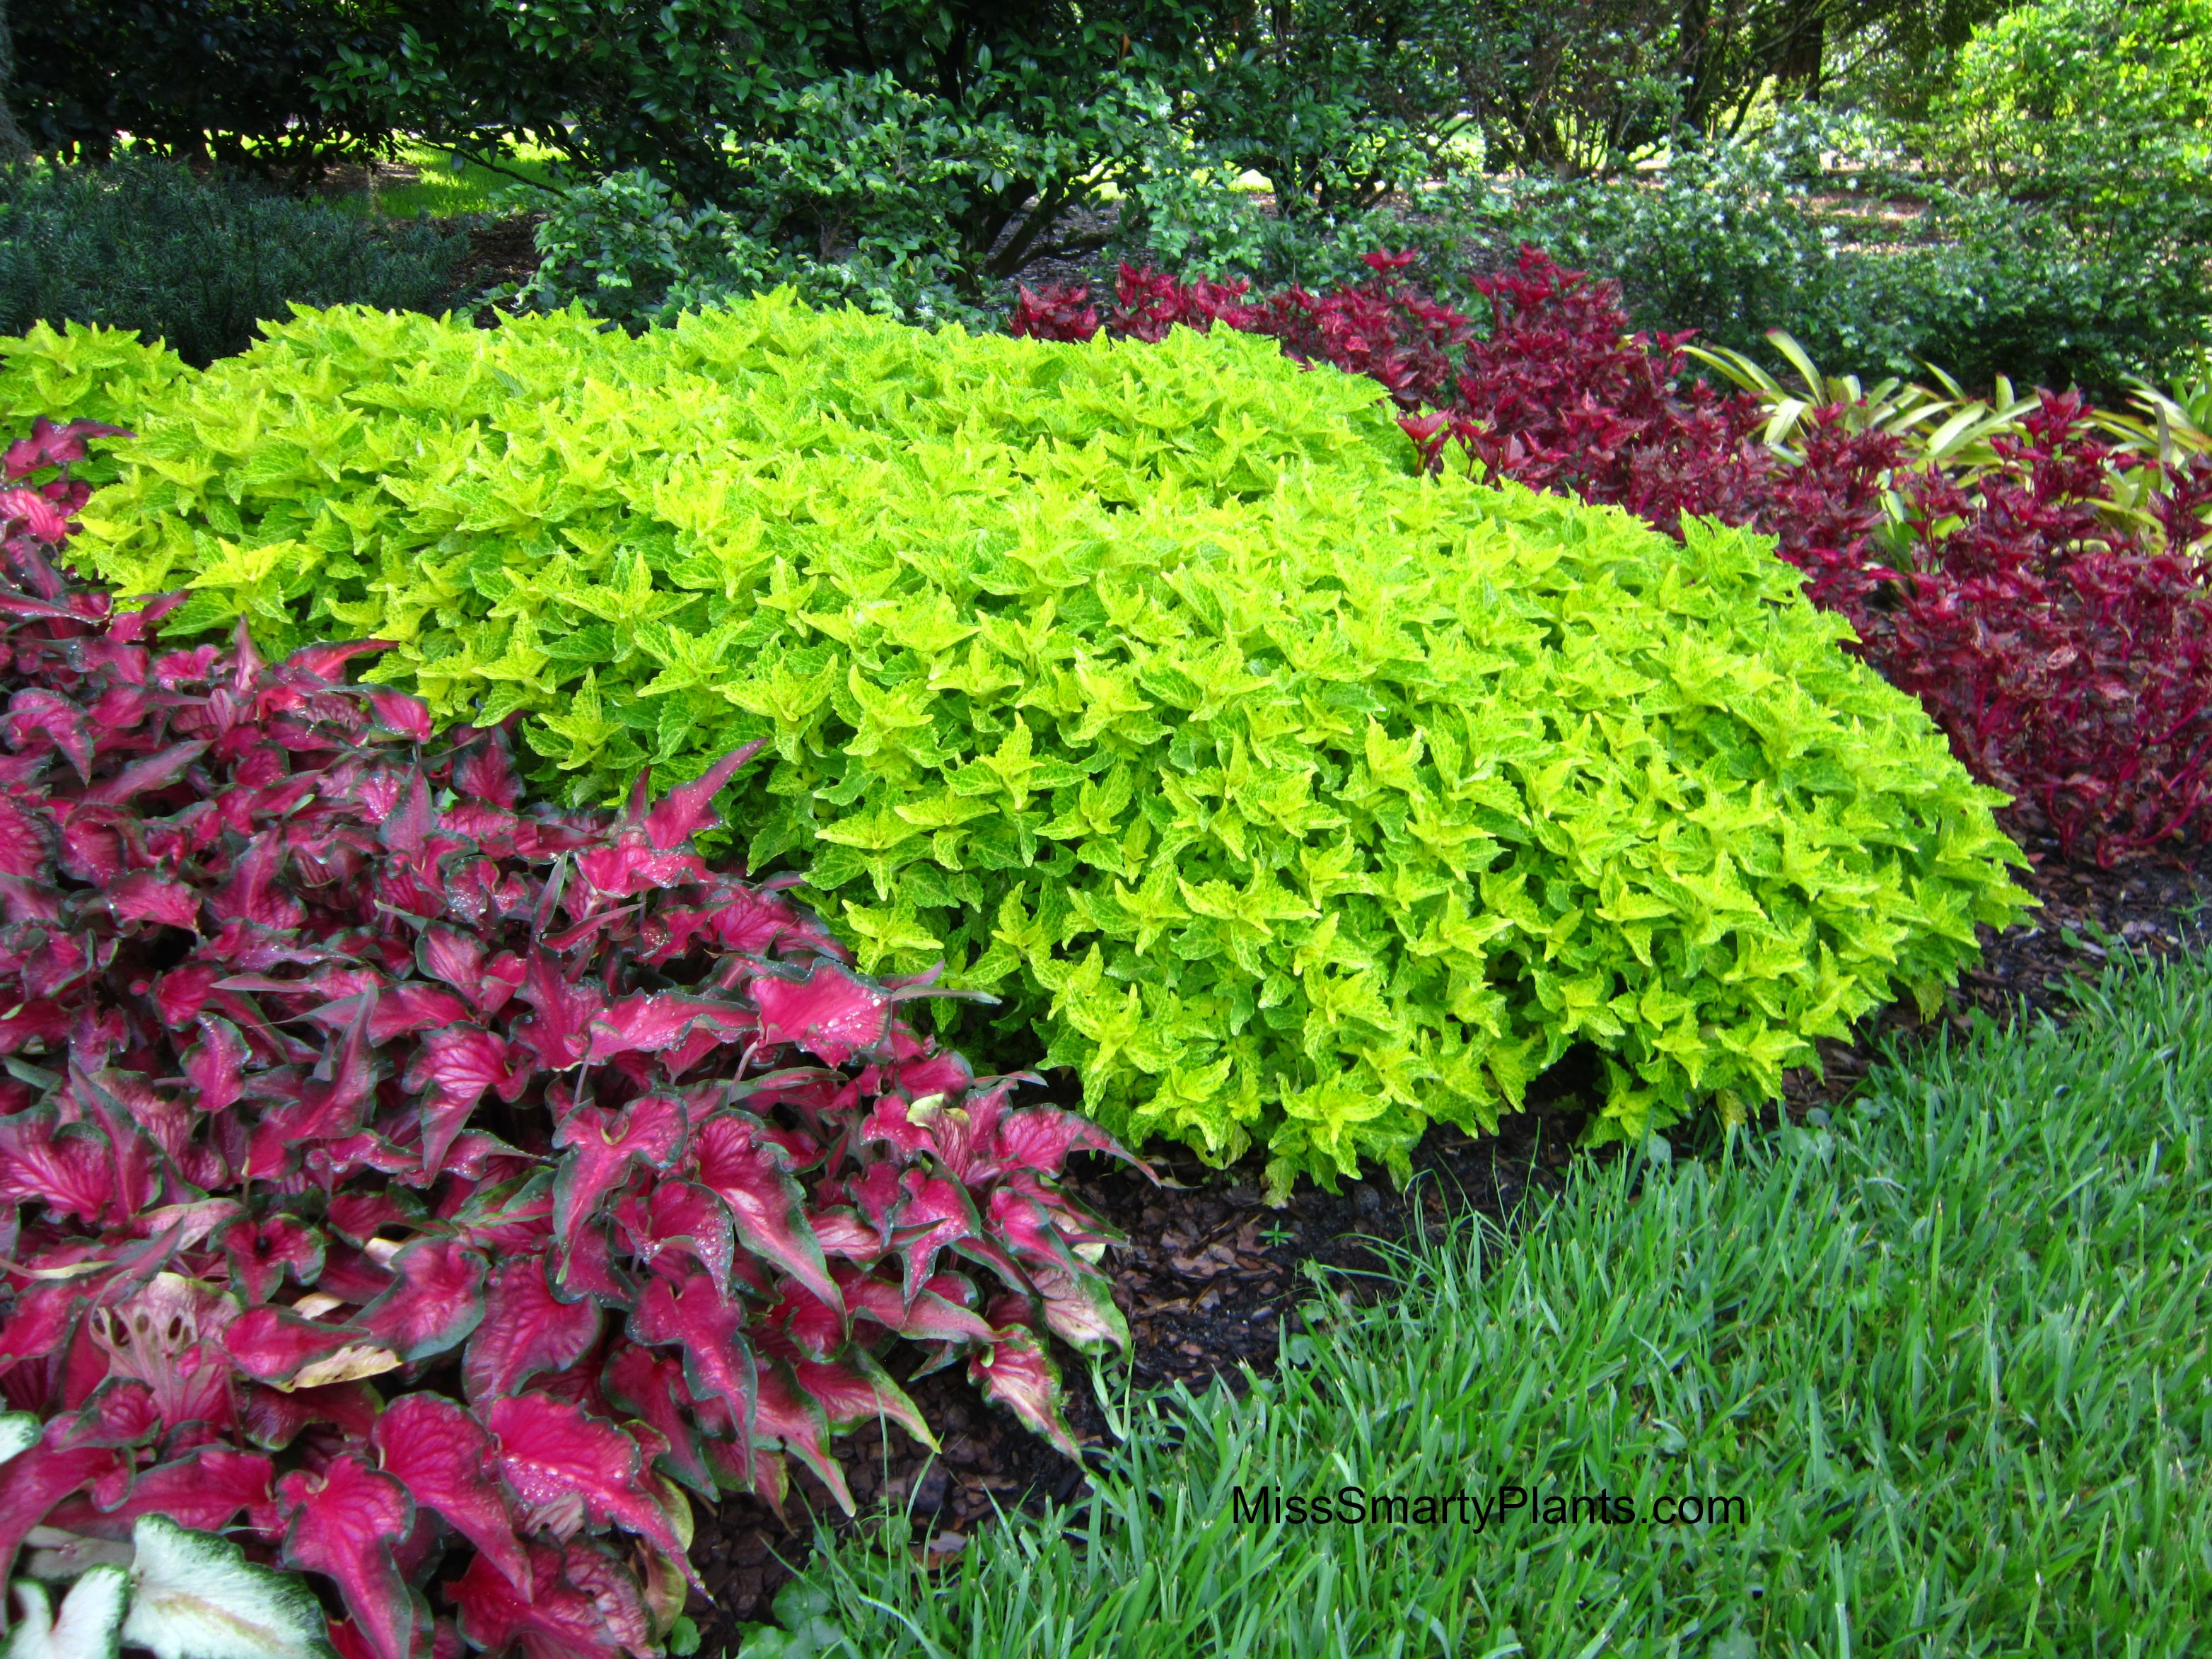 Chartreuse plants miss smarty plants for Green plants for garden